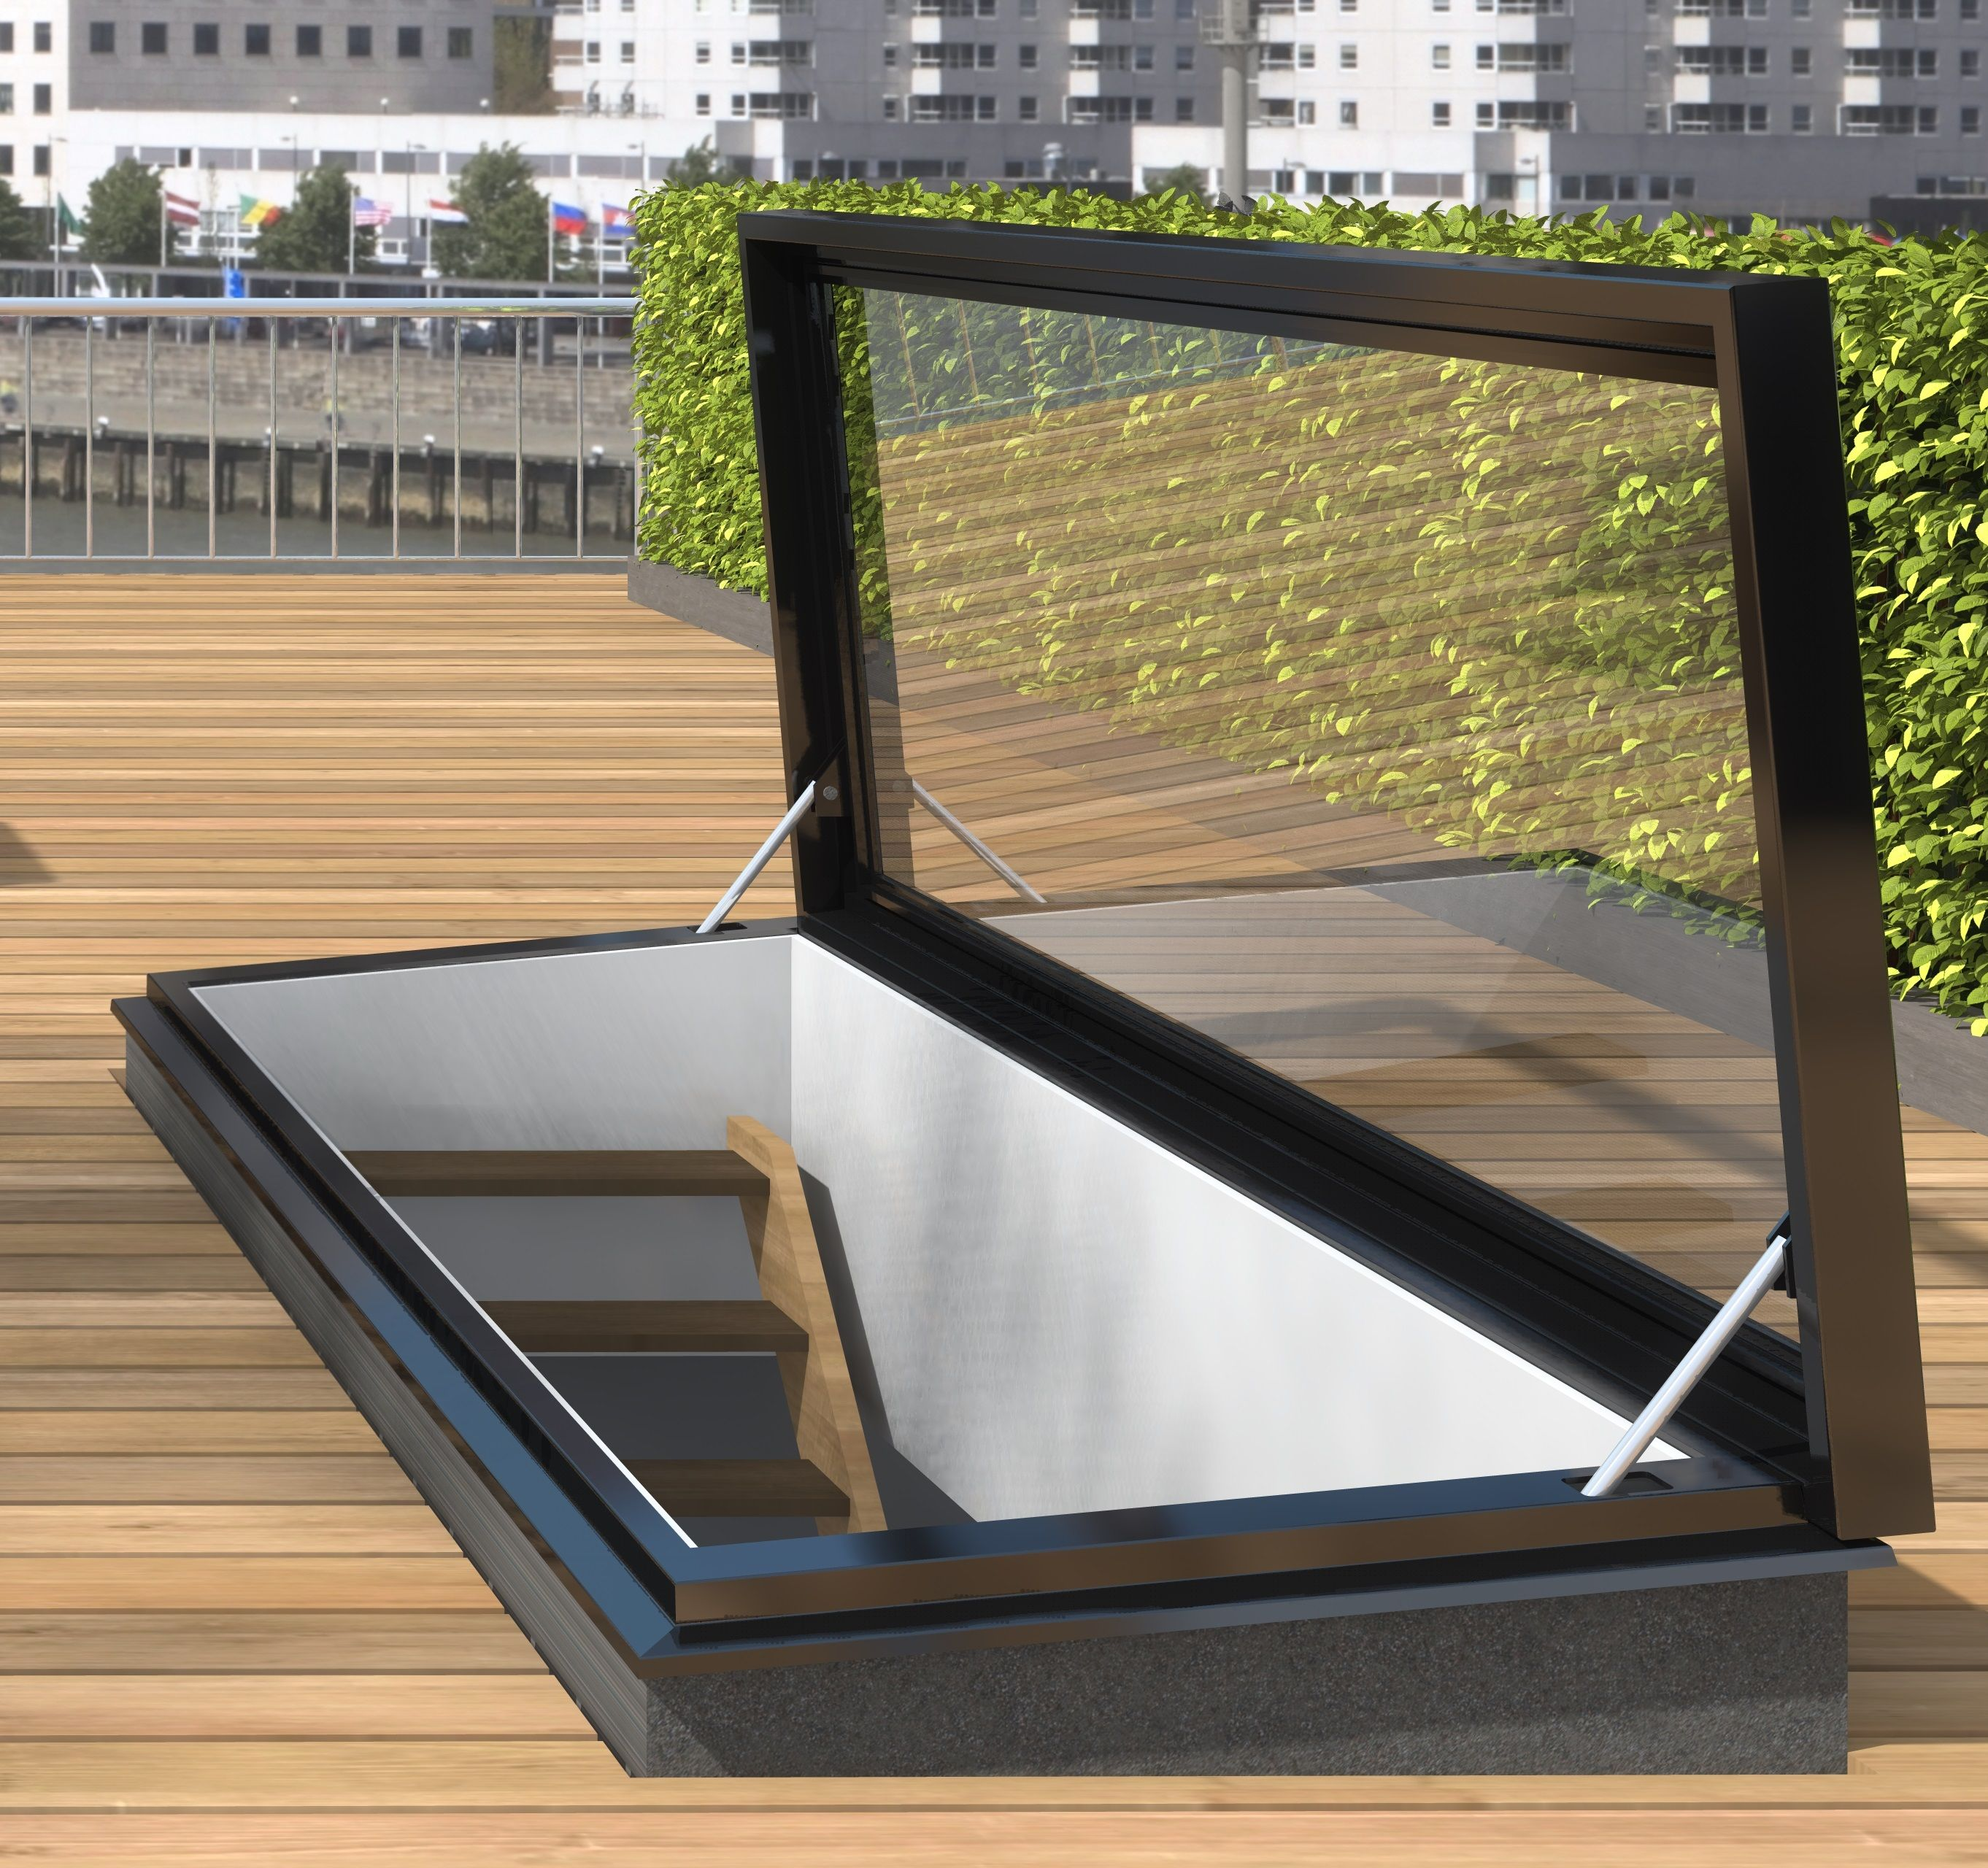 roof access hatch with glass staka roof hatches - Roof Hatch